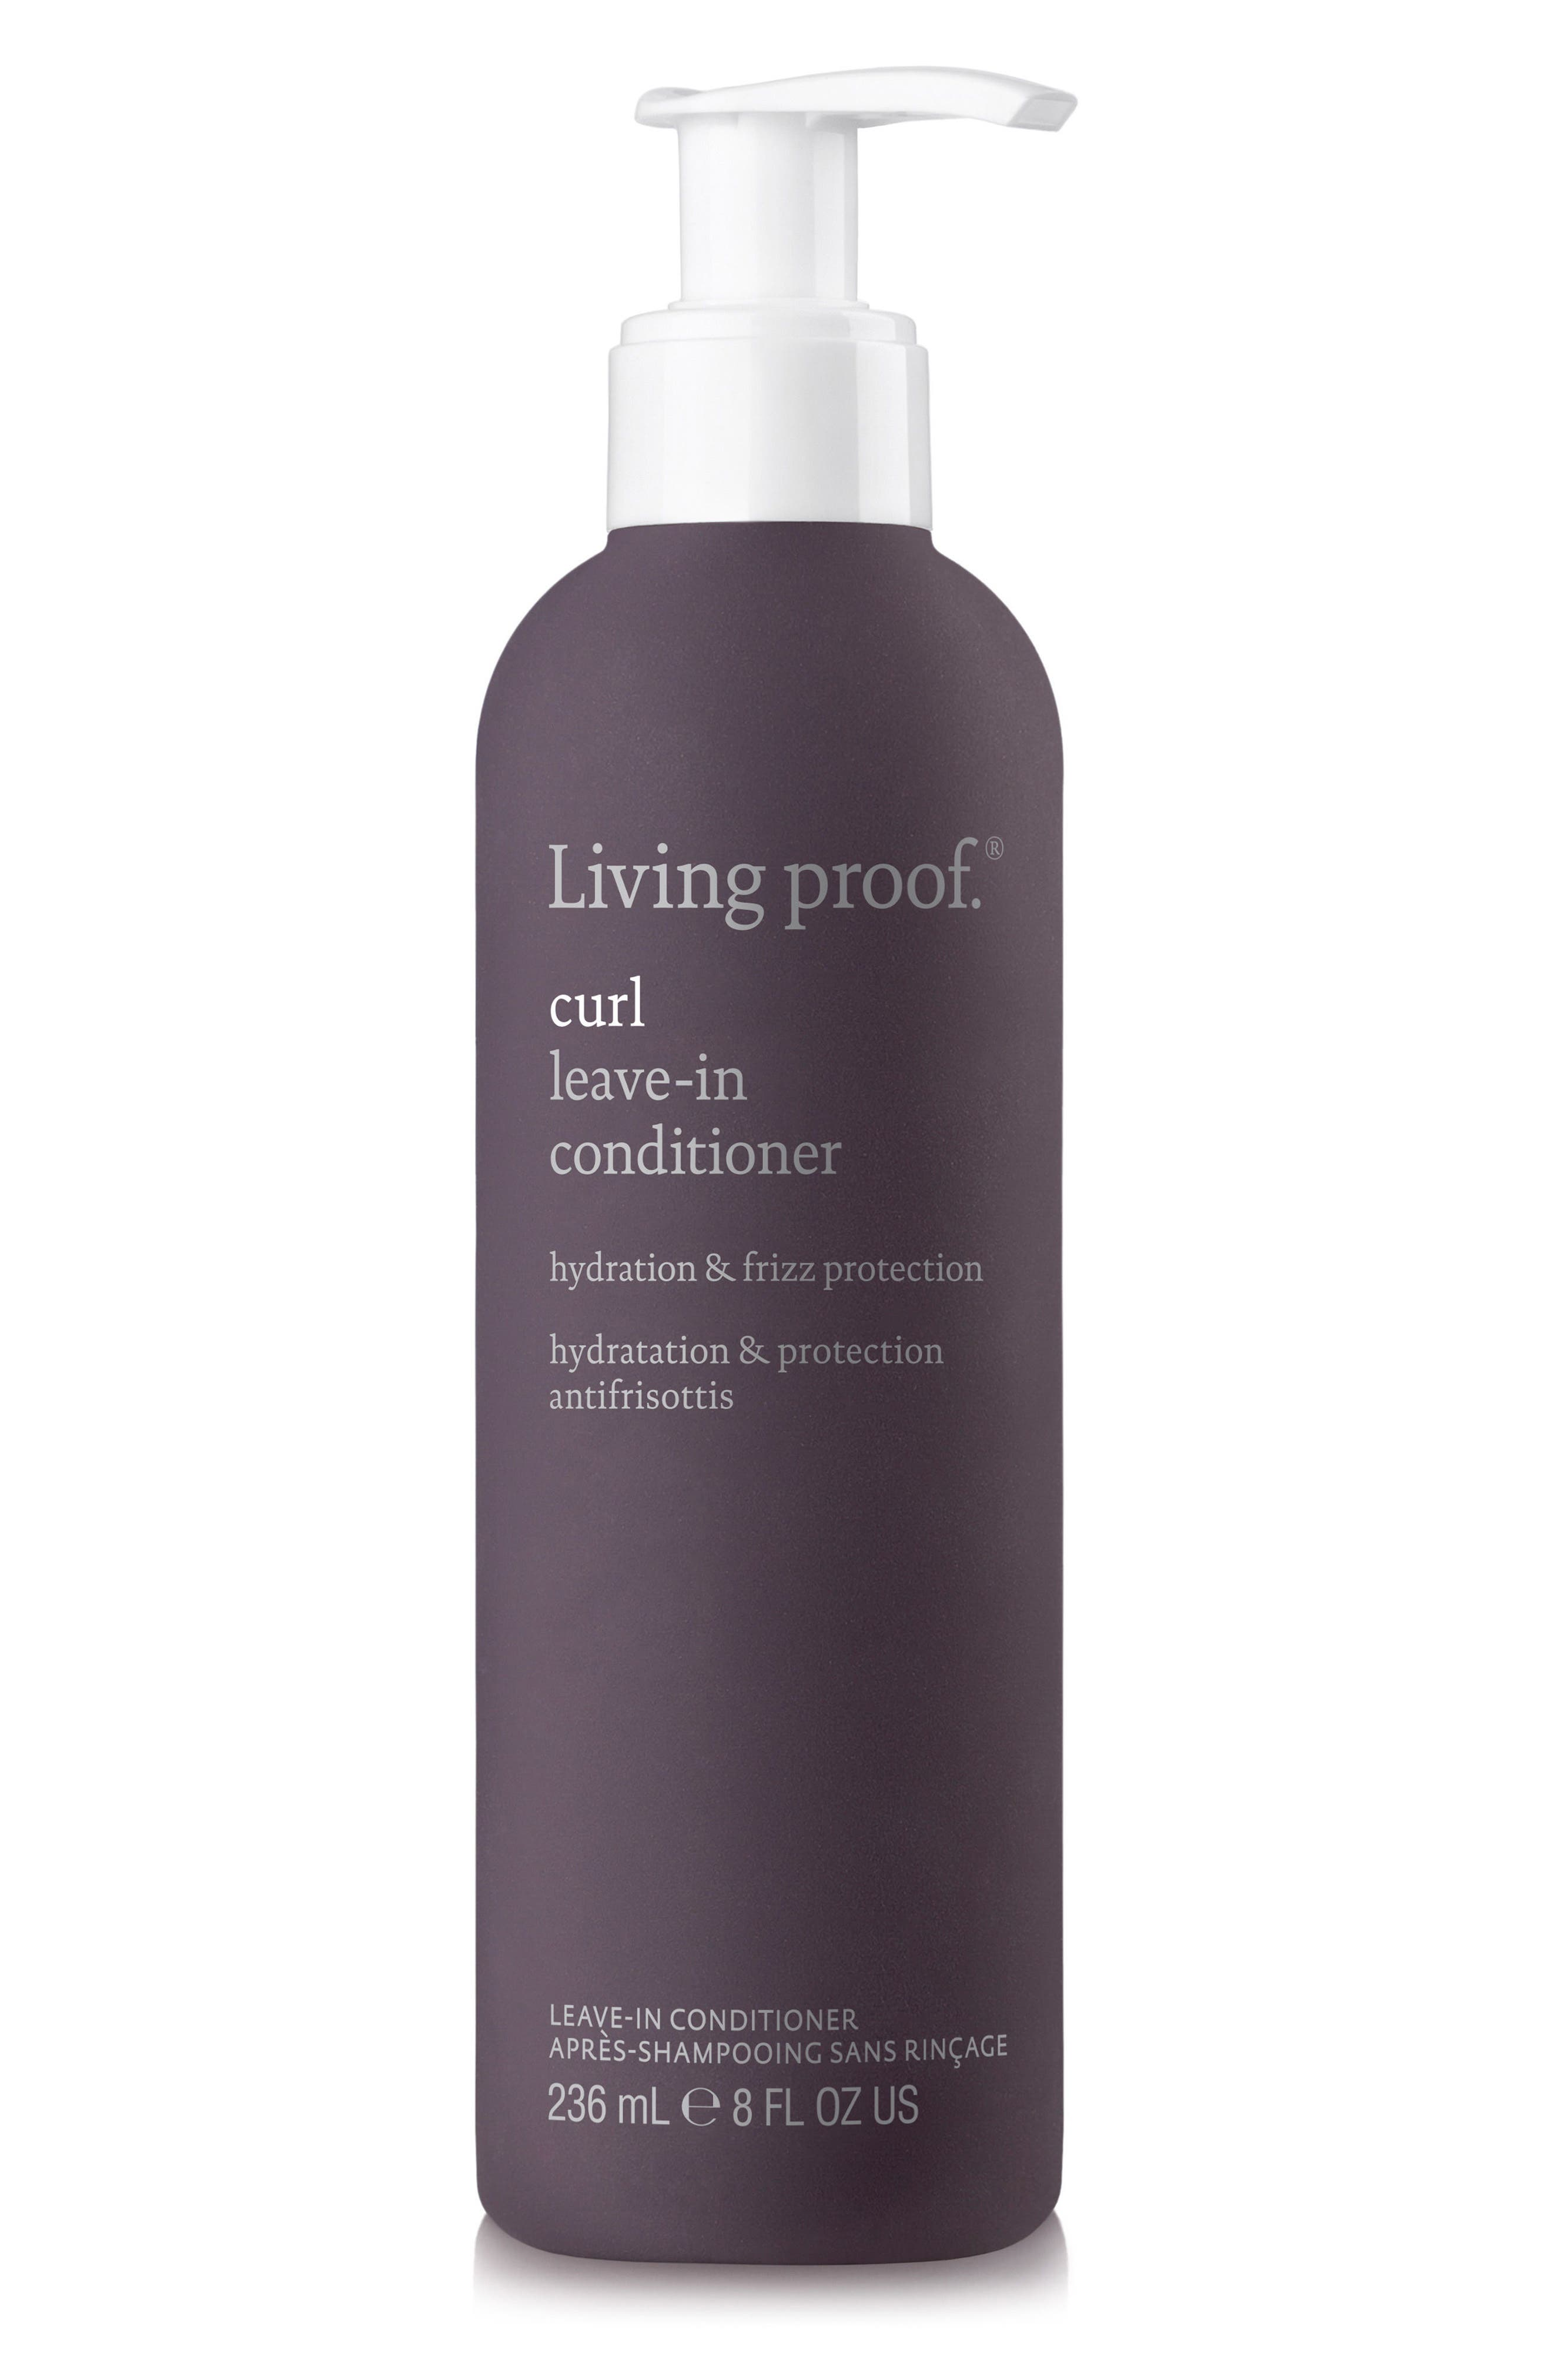 LIVING PROOF® 'Curl' Leave-In Conditioner